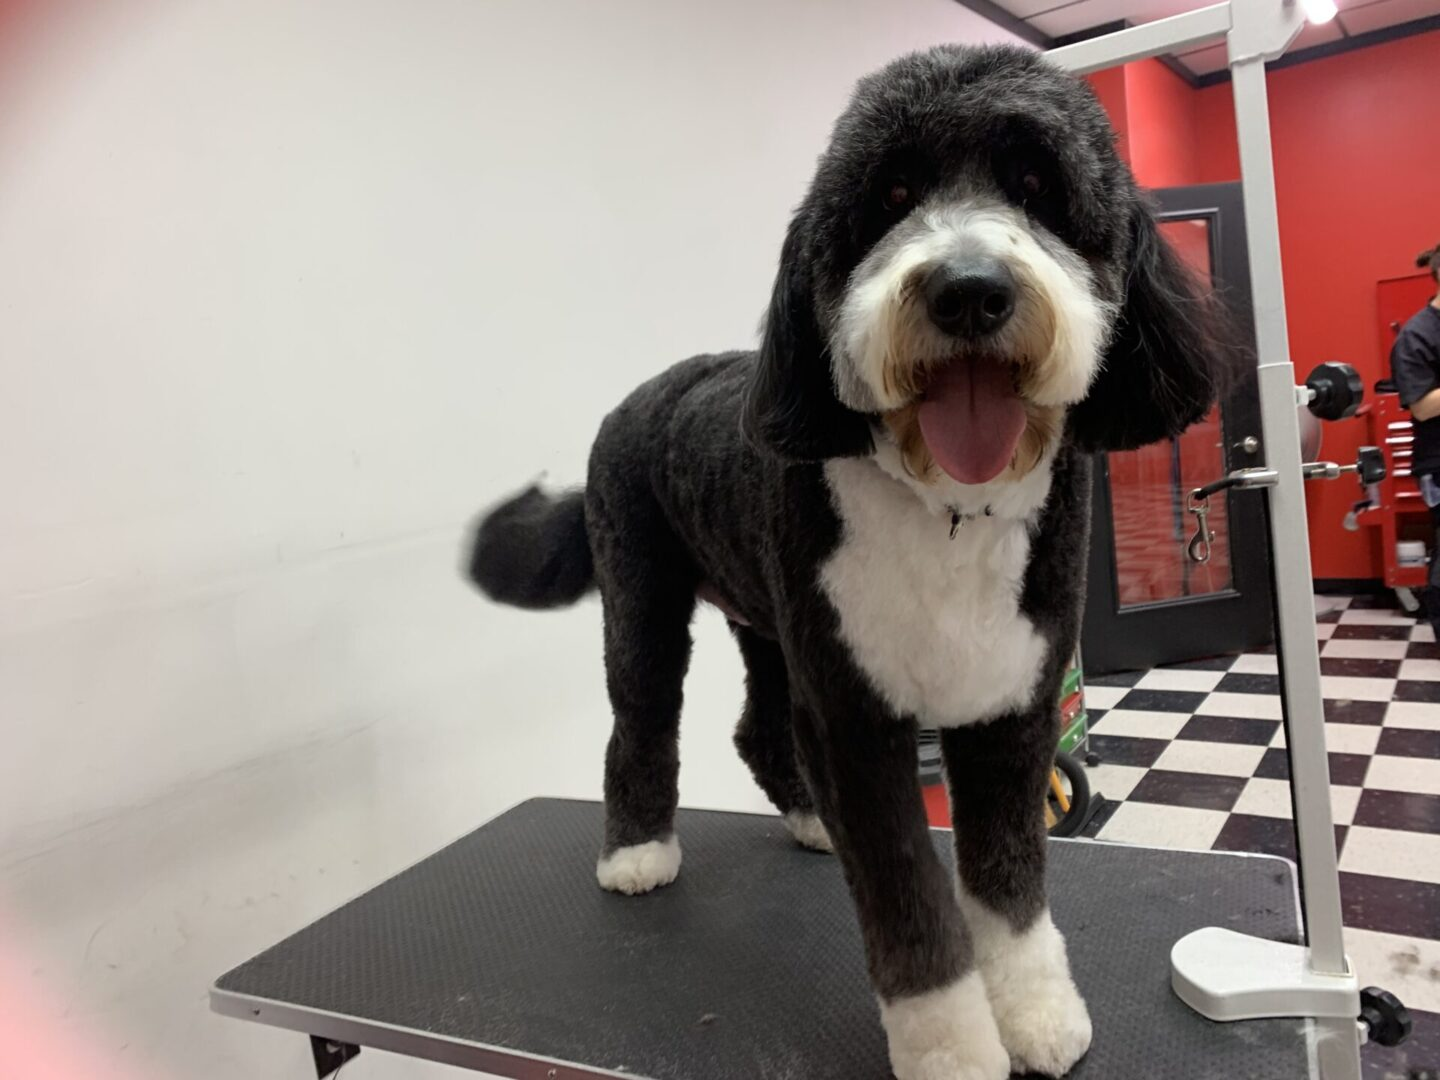 a black and white fluffy dog with its tongue out